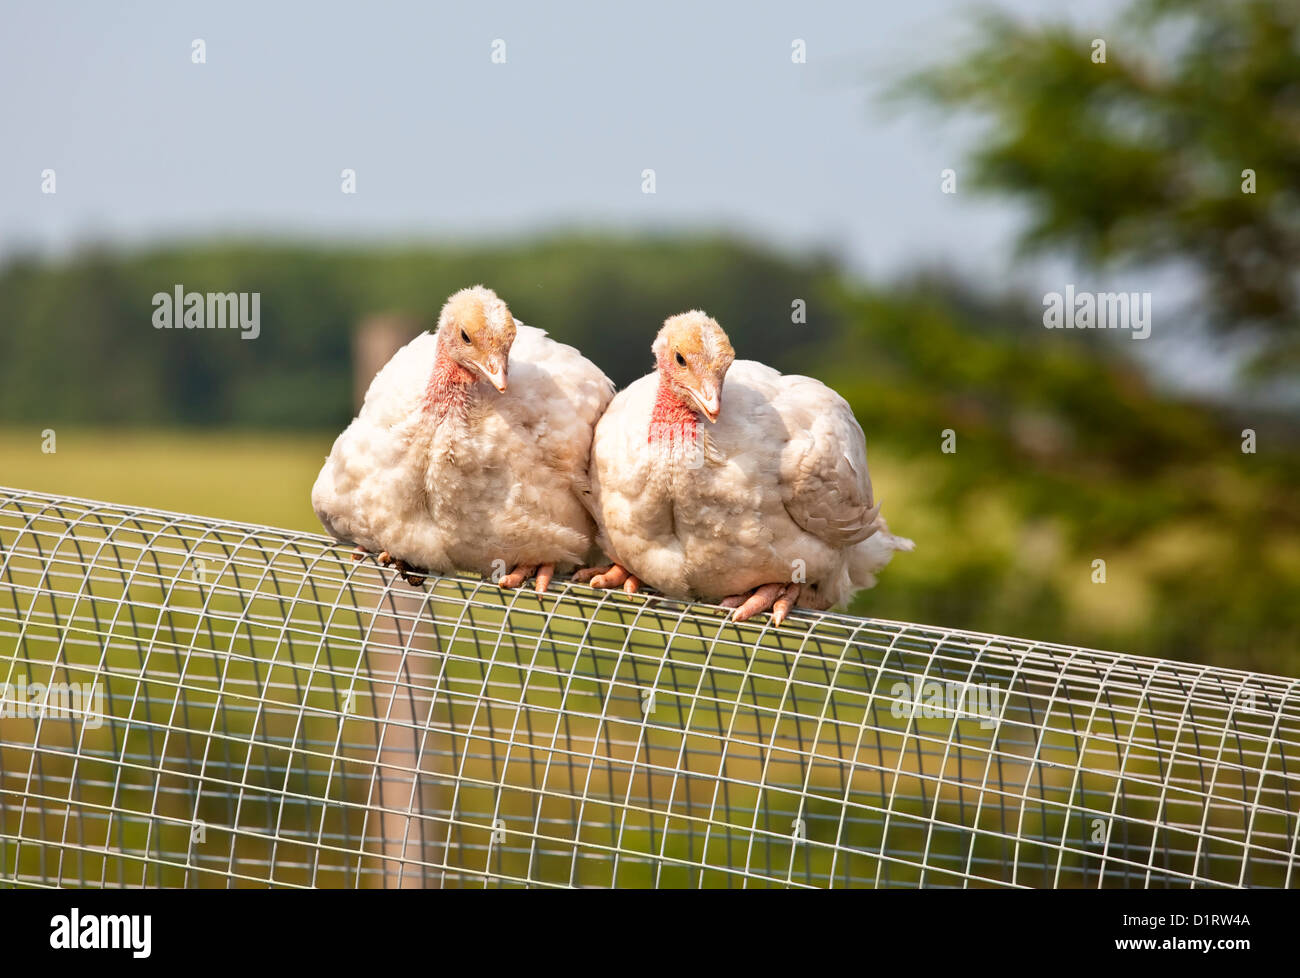 Two free range half grown turkey chicks on an organic farm. - Stock Image